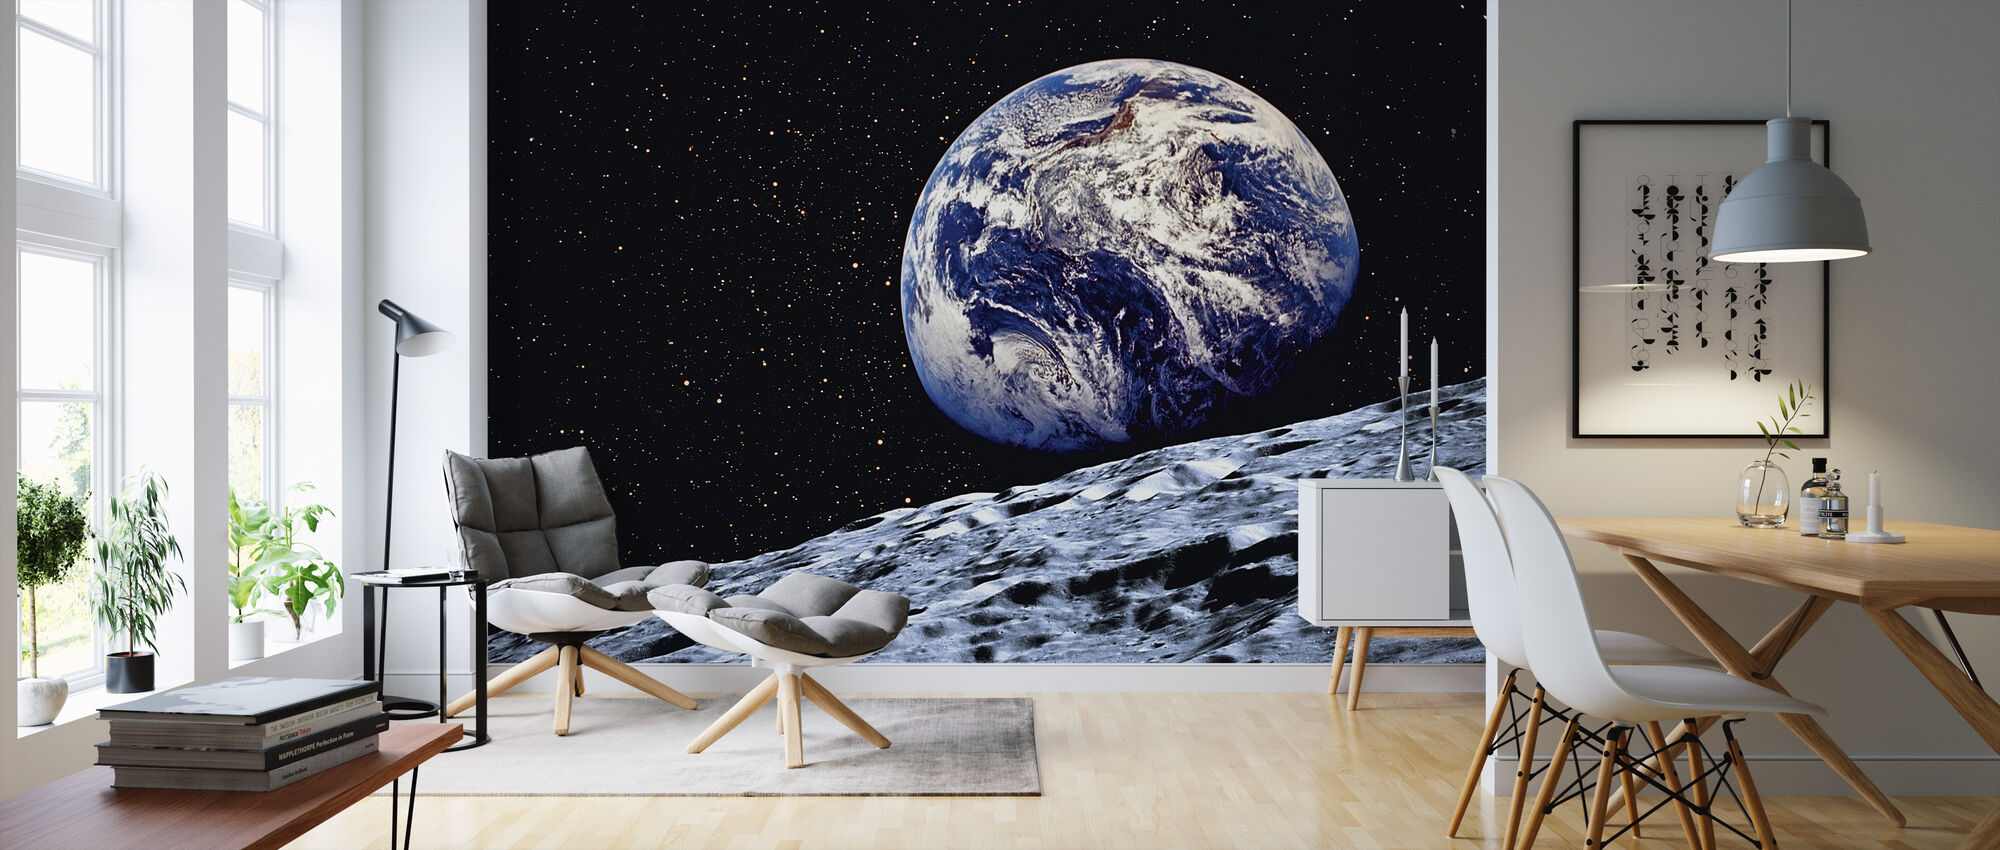 Earth from the Surface of the Moon - Wallpaper - Living Room